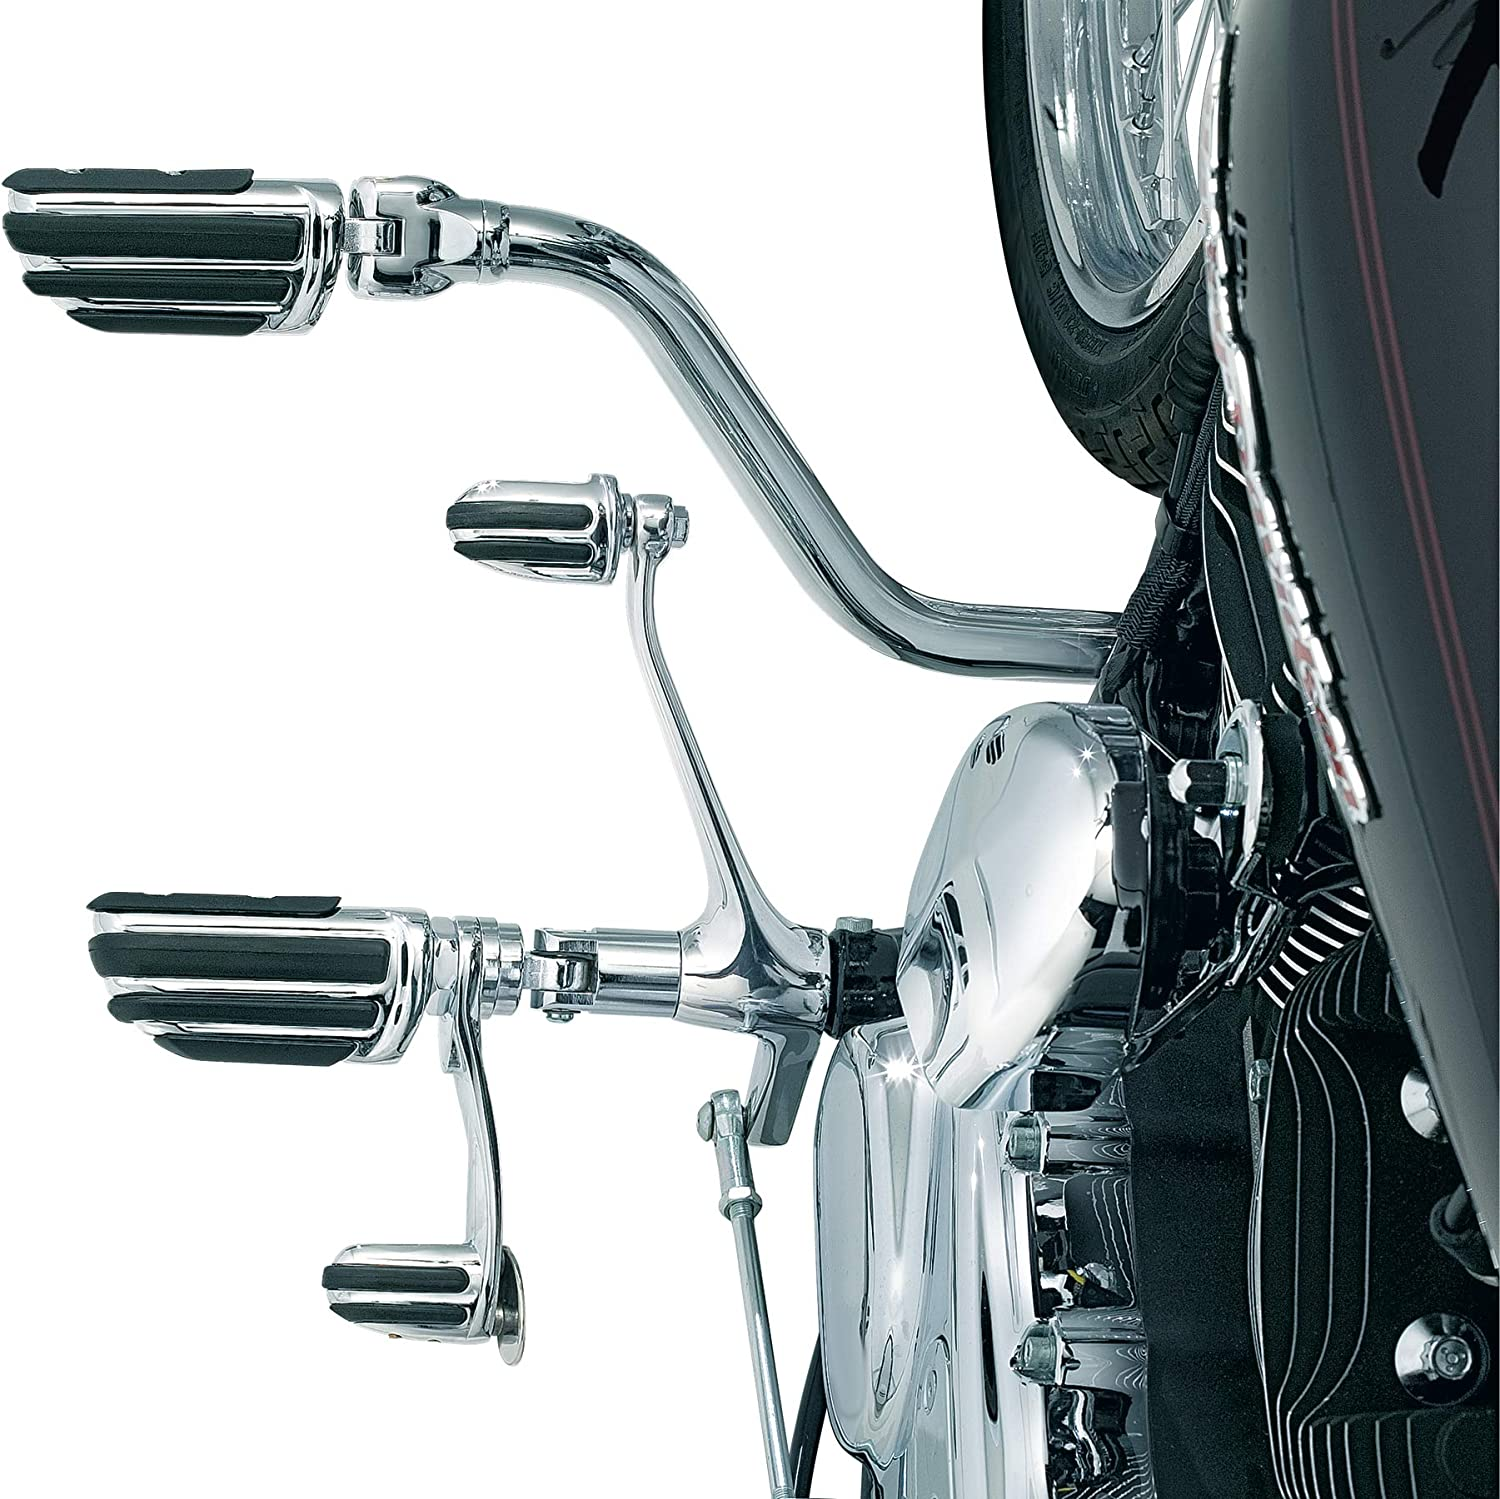 Kuryakyn 7841 Motorcycle Foot Controls Chrome Extended Length//Long Cruise Arm Mark IV for 2000-17 Harley-Davidson FL Softail Motorcycles